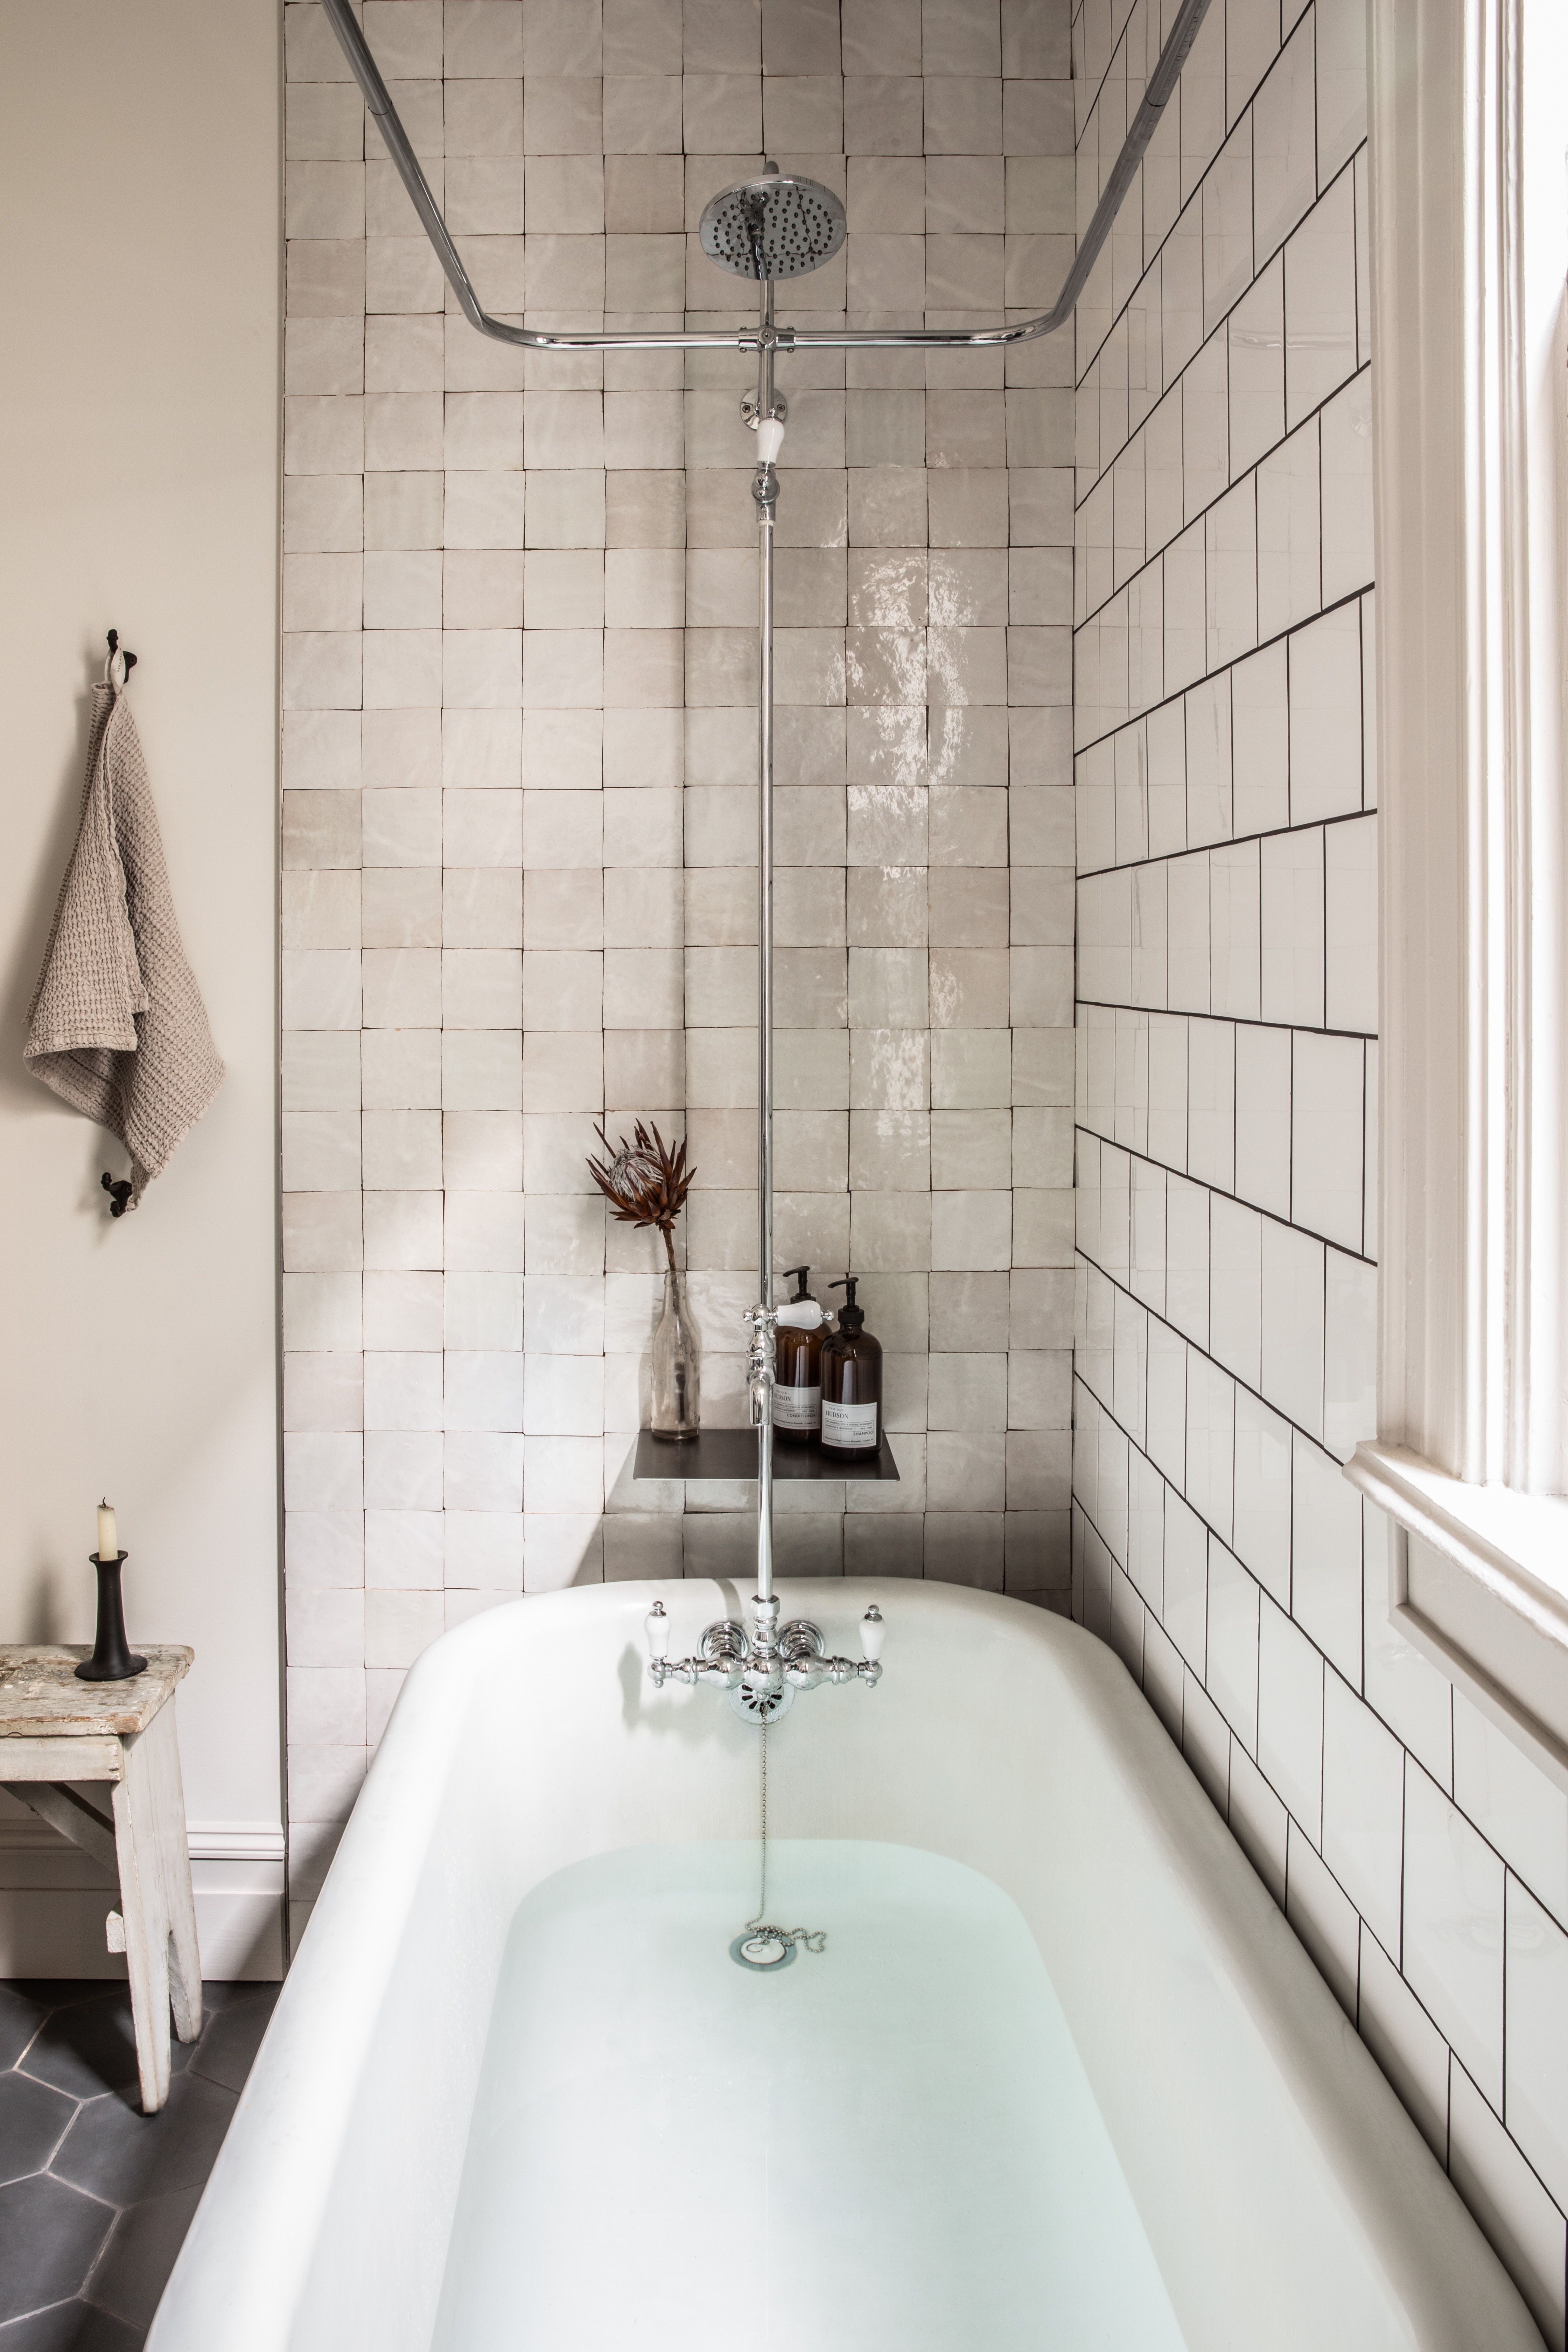 White Subway Tiles Have Been De Rigueur For Tiled Walls Since The Turn Of The Century They C White Bathroom Tiles Bathroom Renovation Bathroom Interior Design